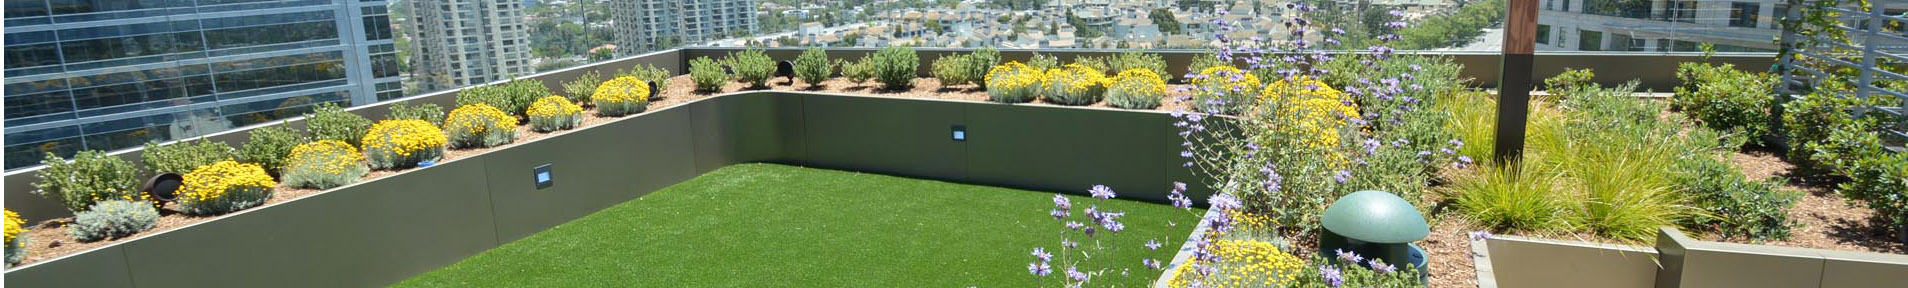 Roof-Turf_Banner_01